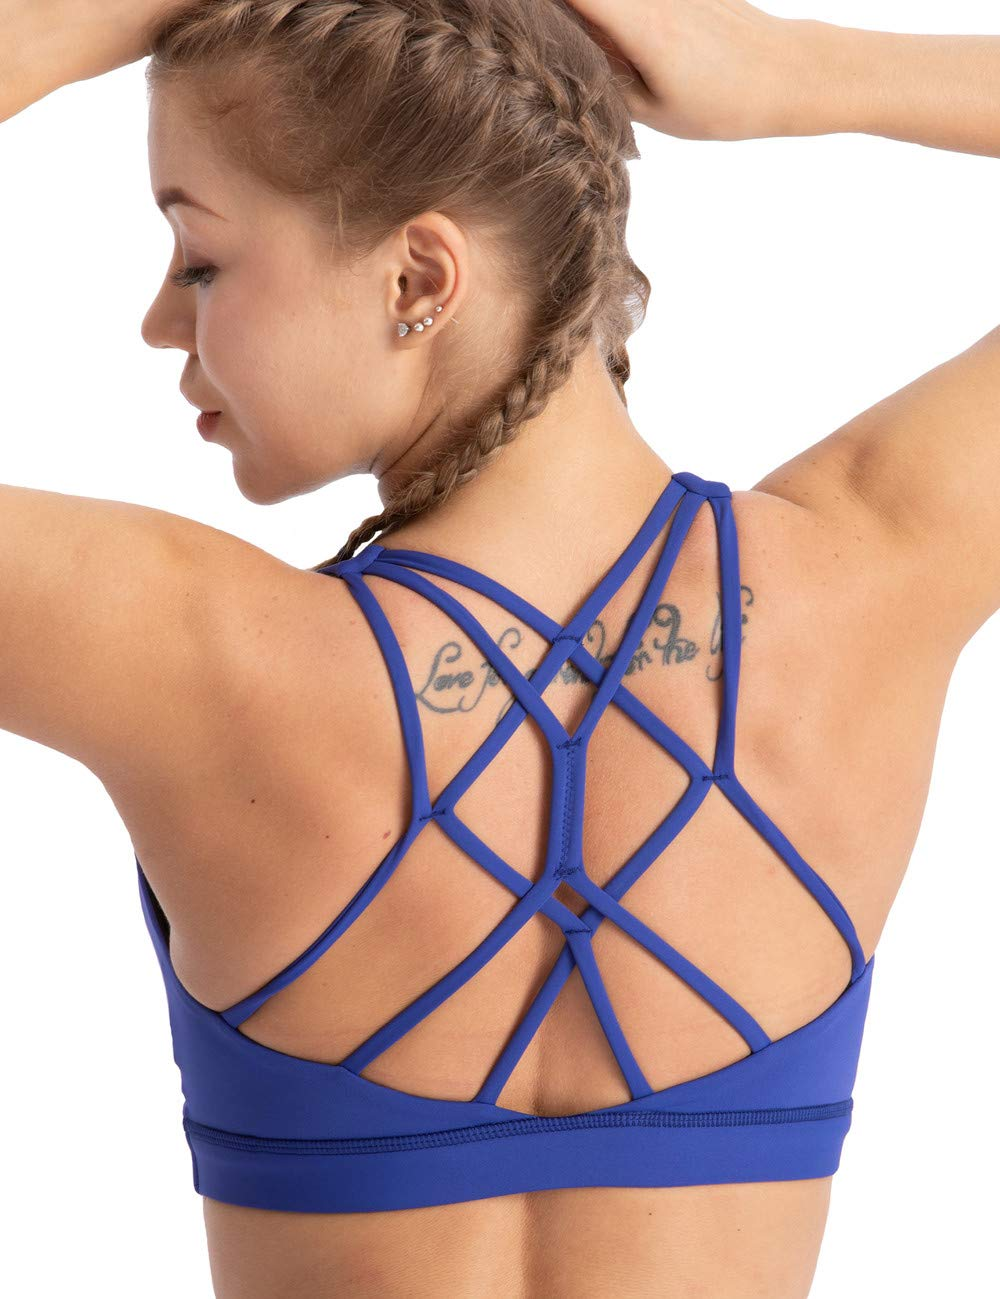 coastal rose Women's Yoga Bra Top Strappy Back Push Up Crop Sports Bra Activewear US XXL Royal Blue by coastal rose